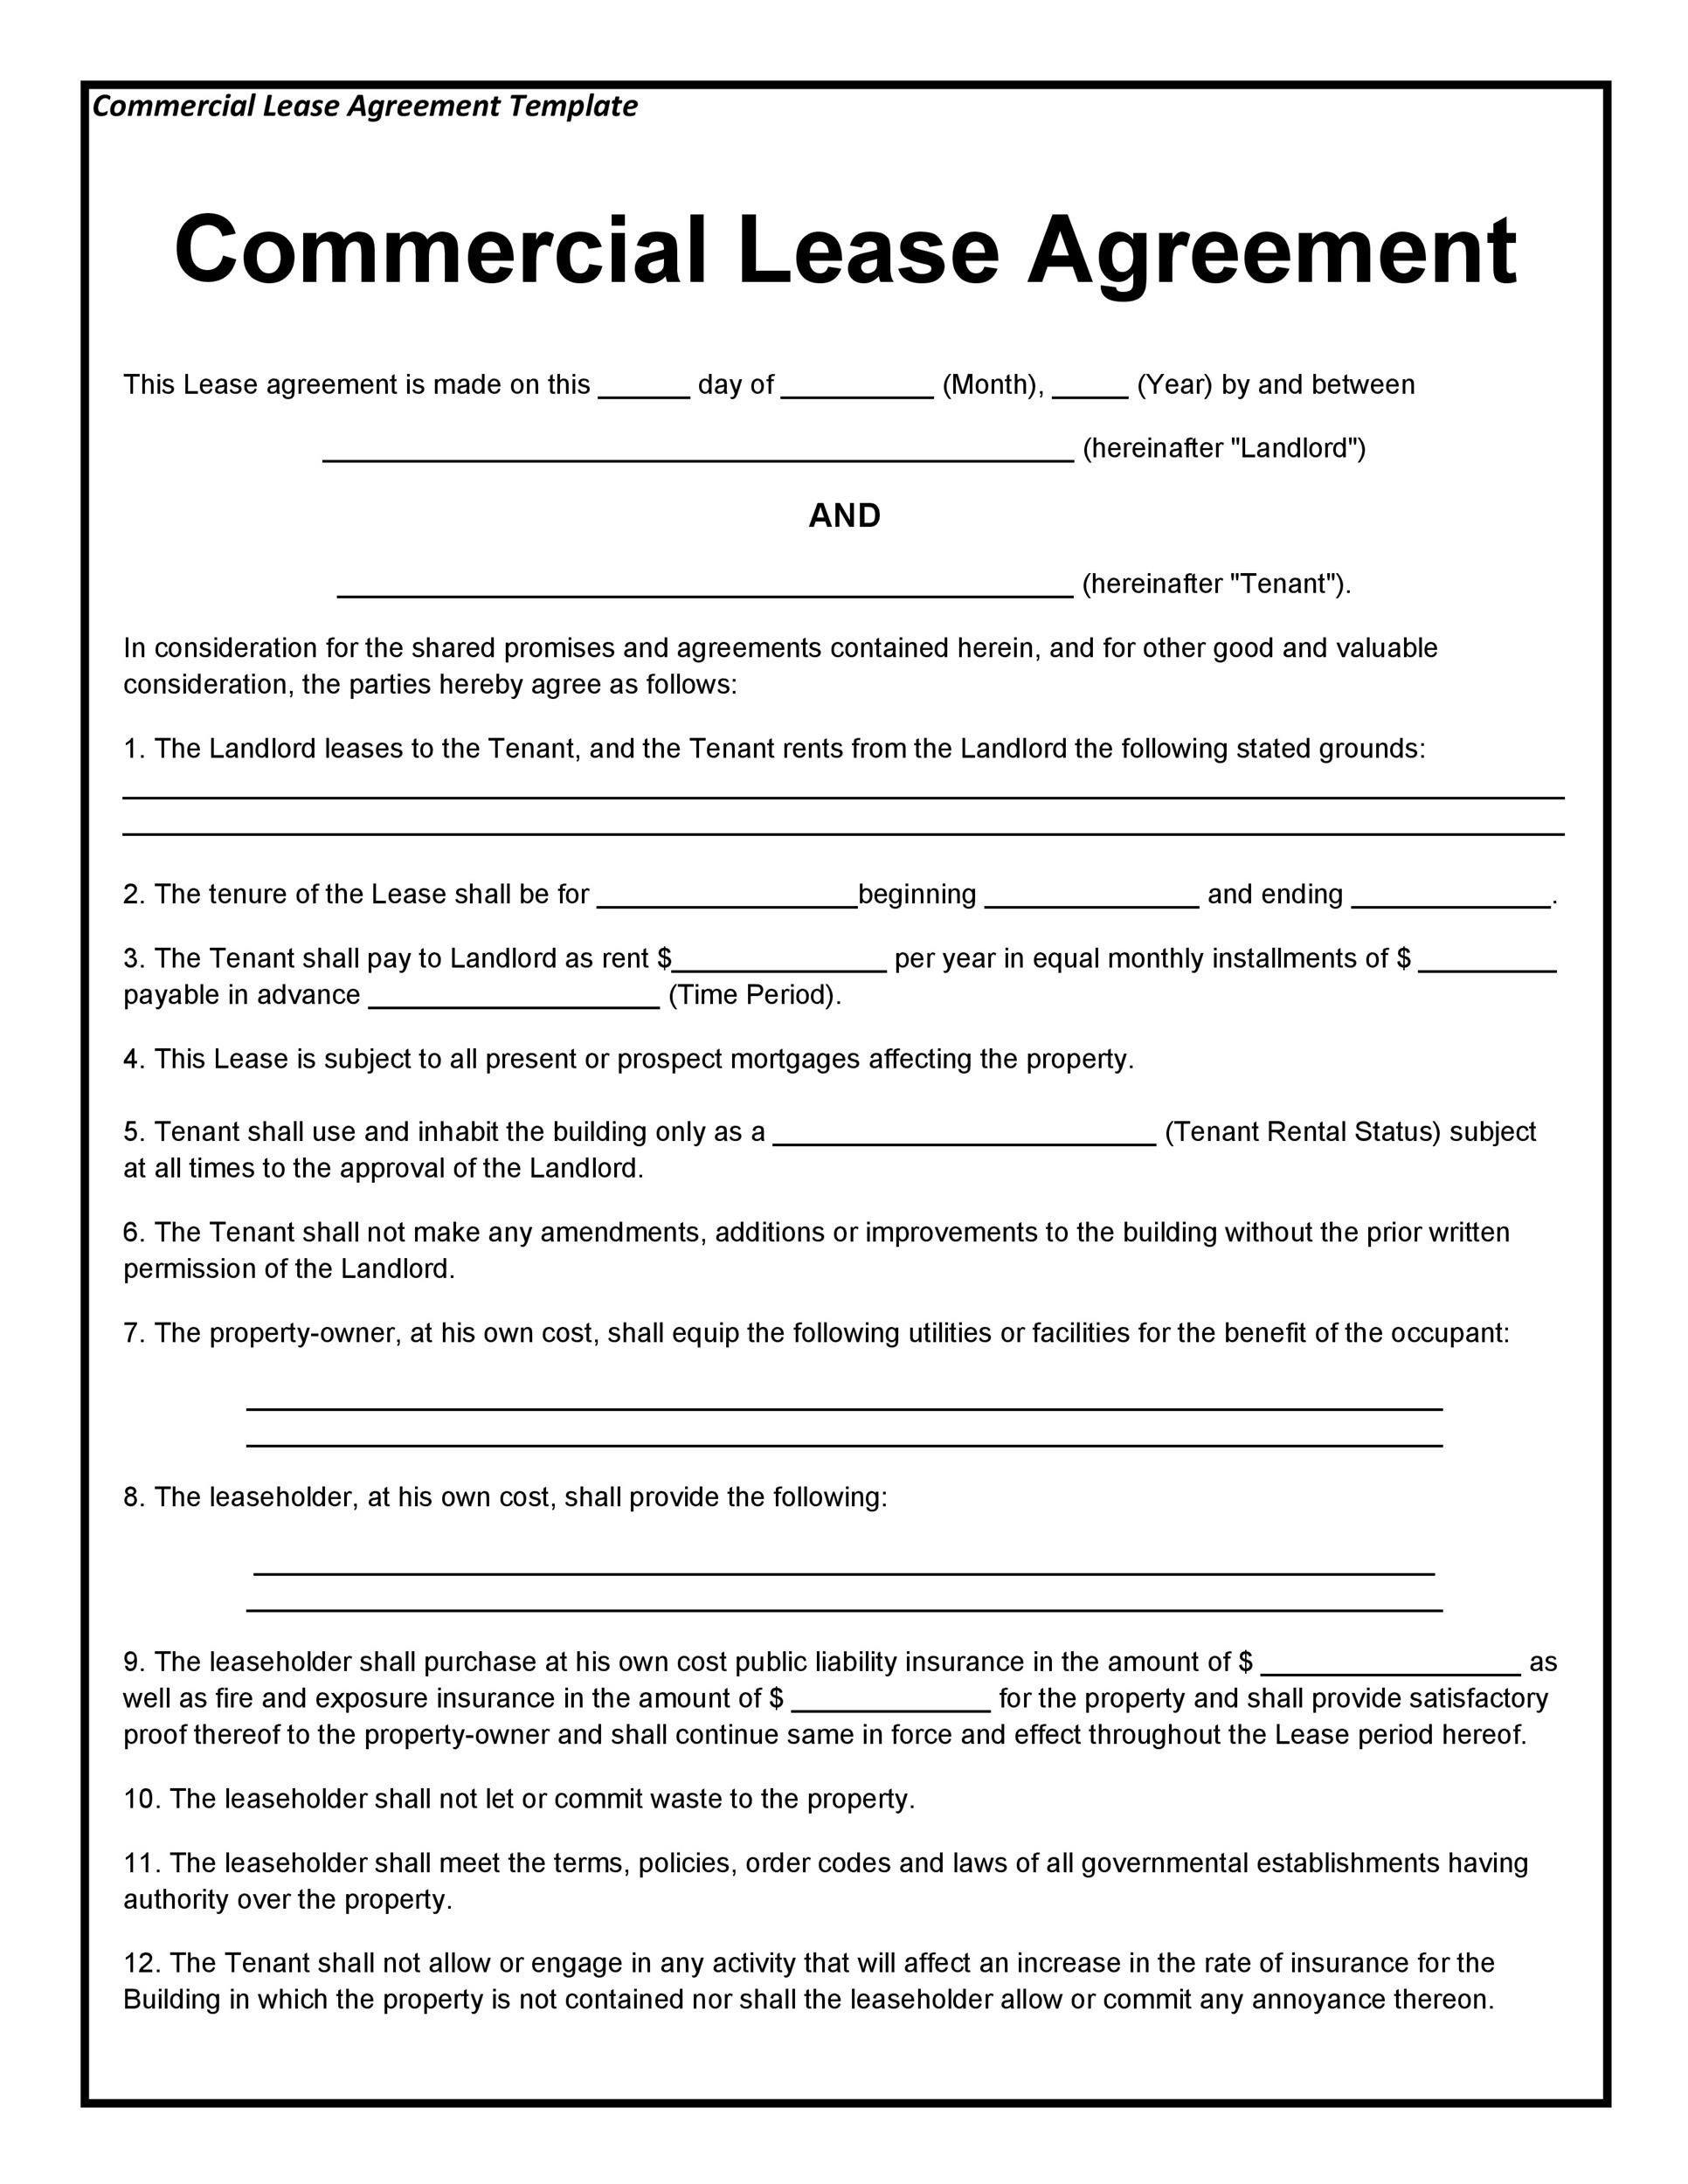 Commercial Lease Agreement Template 04